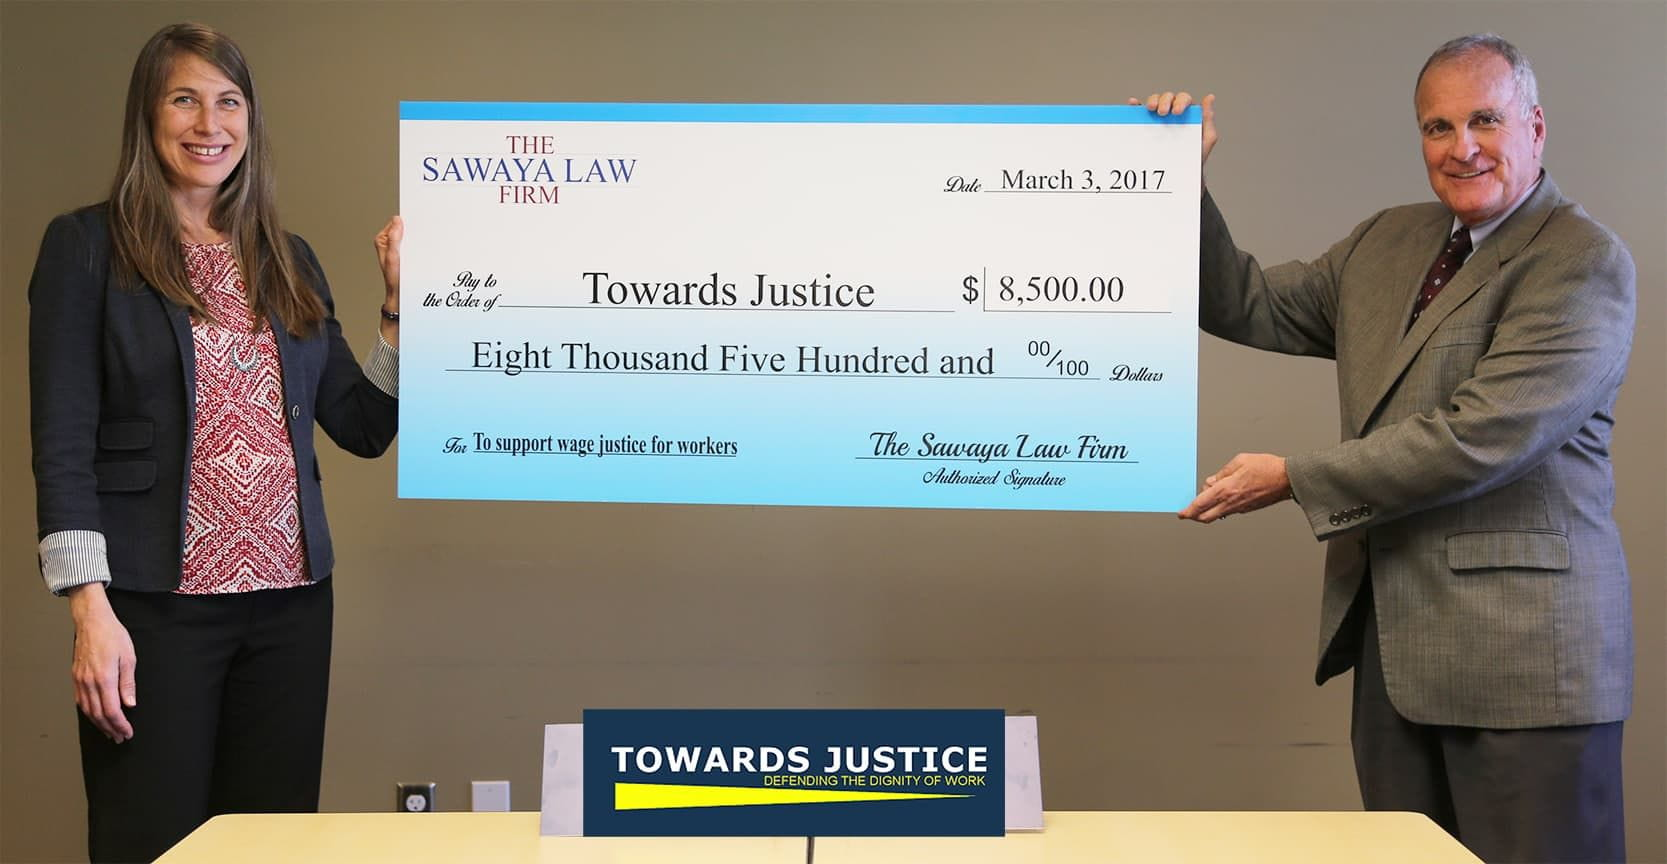 Sawaya Law Firm Orchestrates Donation to Legal Non-Profit Organization, Towards Justice